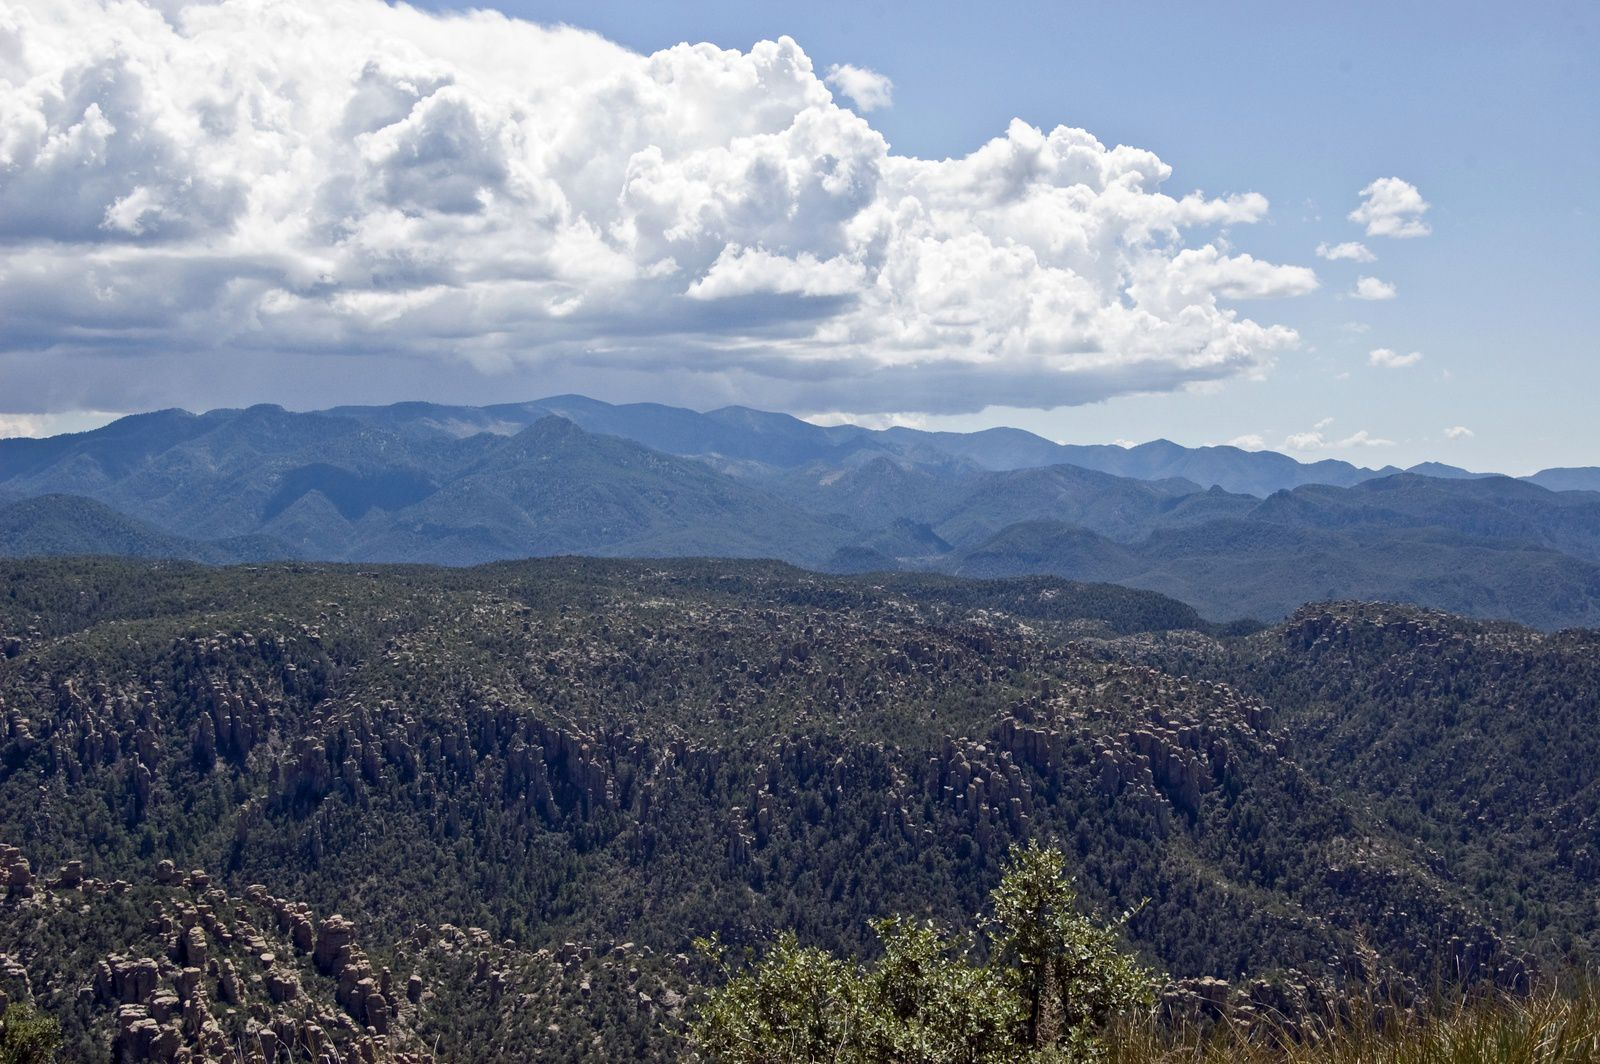 The Chiricahua mountains, with hoodoos in the foreground and the Turkey Creek caldera in the background - photo Ken Bosma